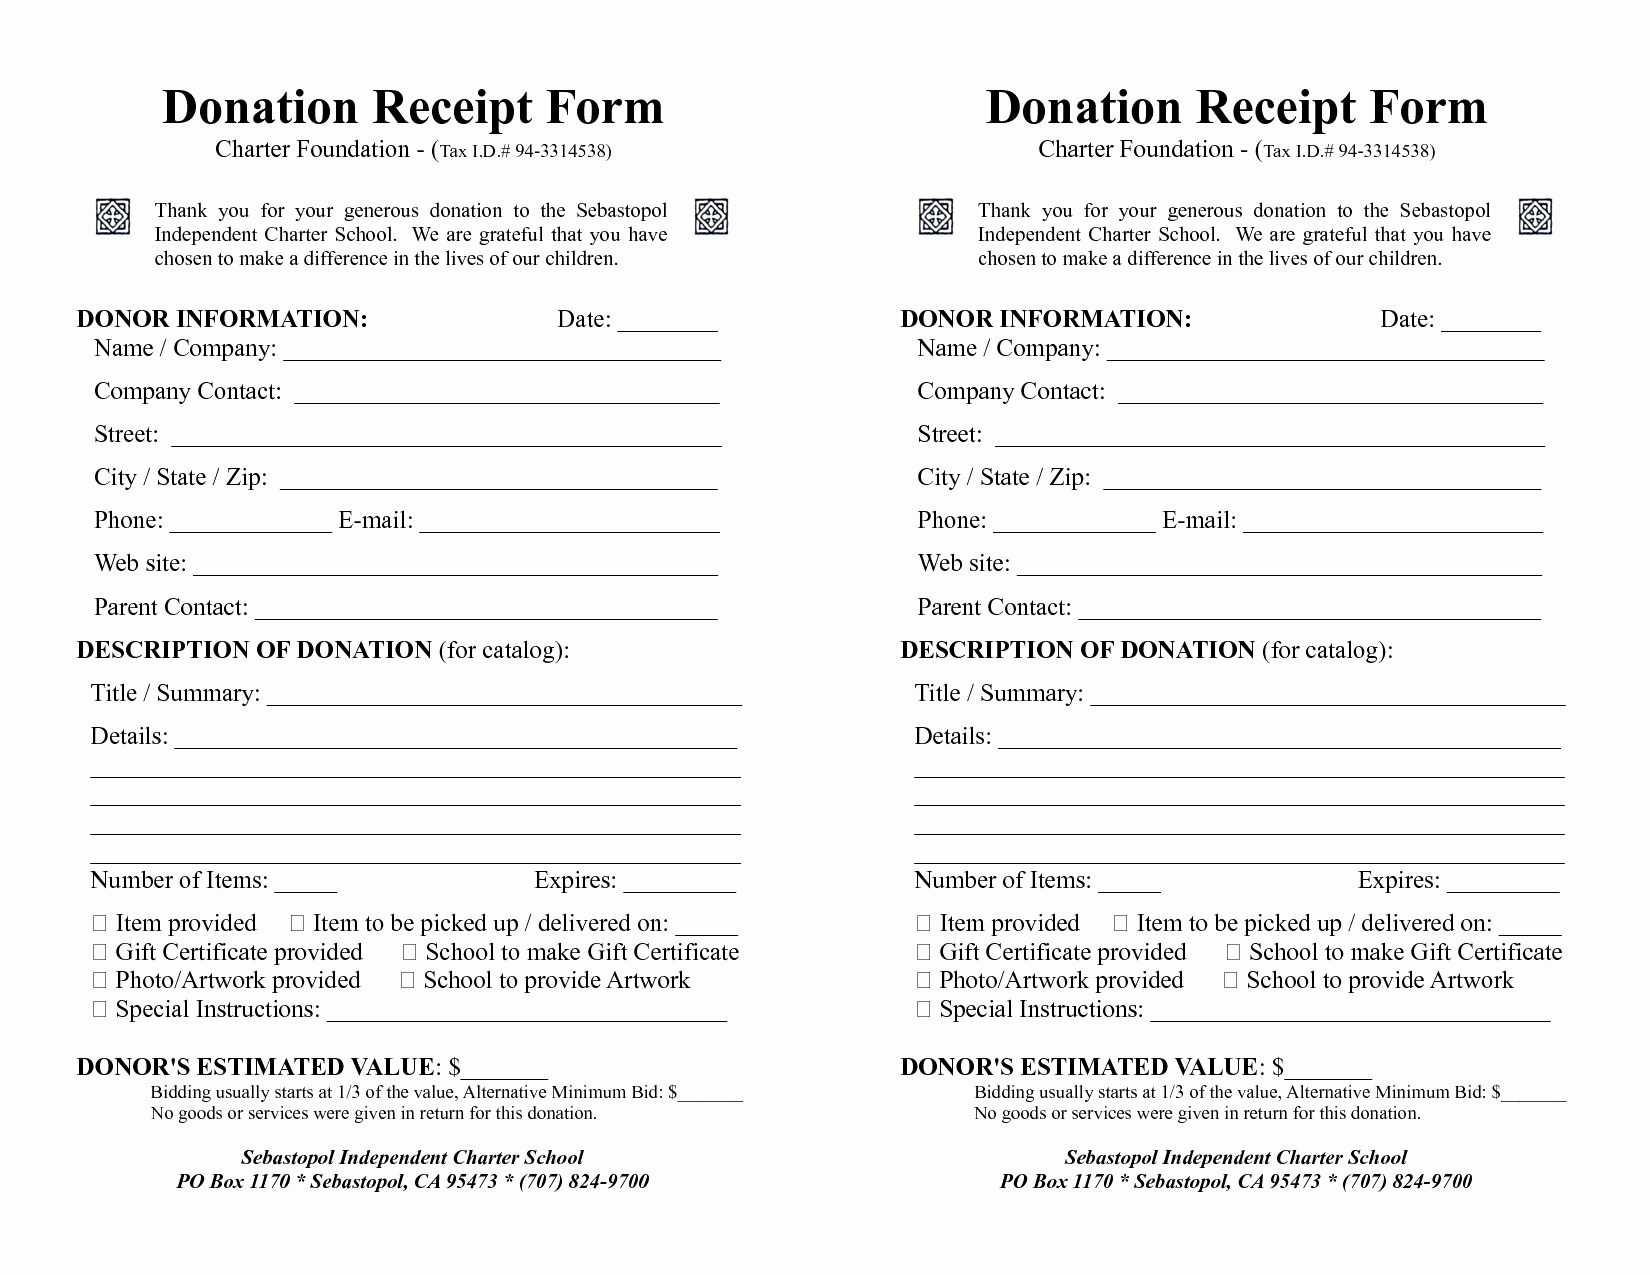 Donation Calculator Spreadsheet With Goodwill Donation